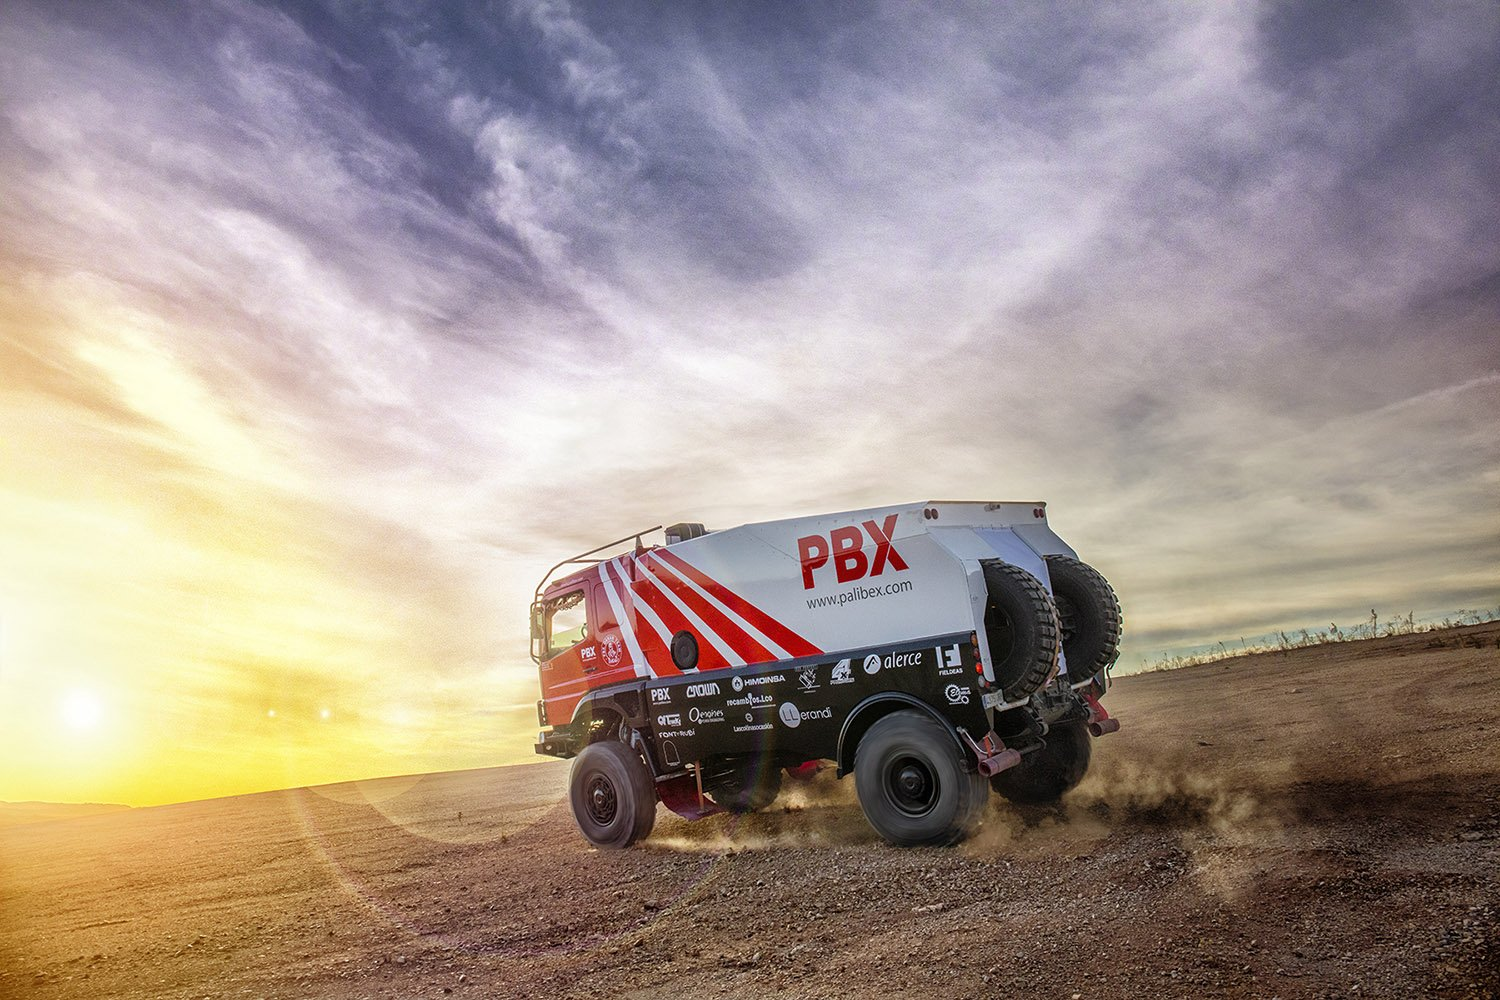 PBX DAKAR 2018 TEAM